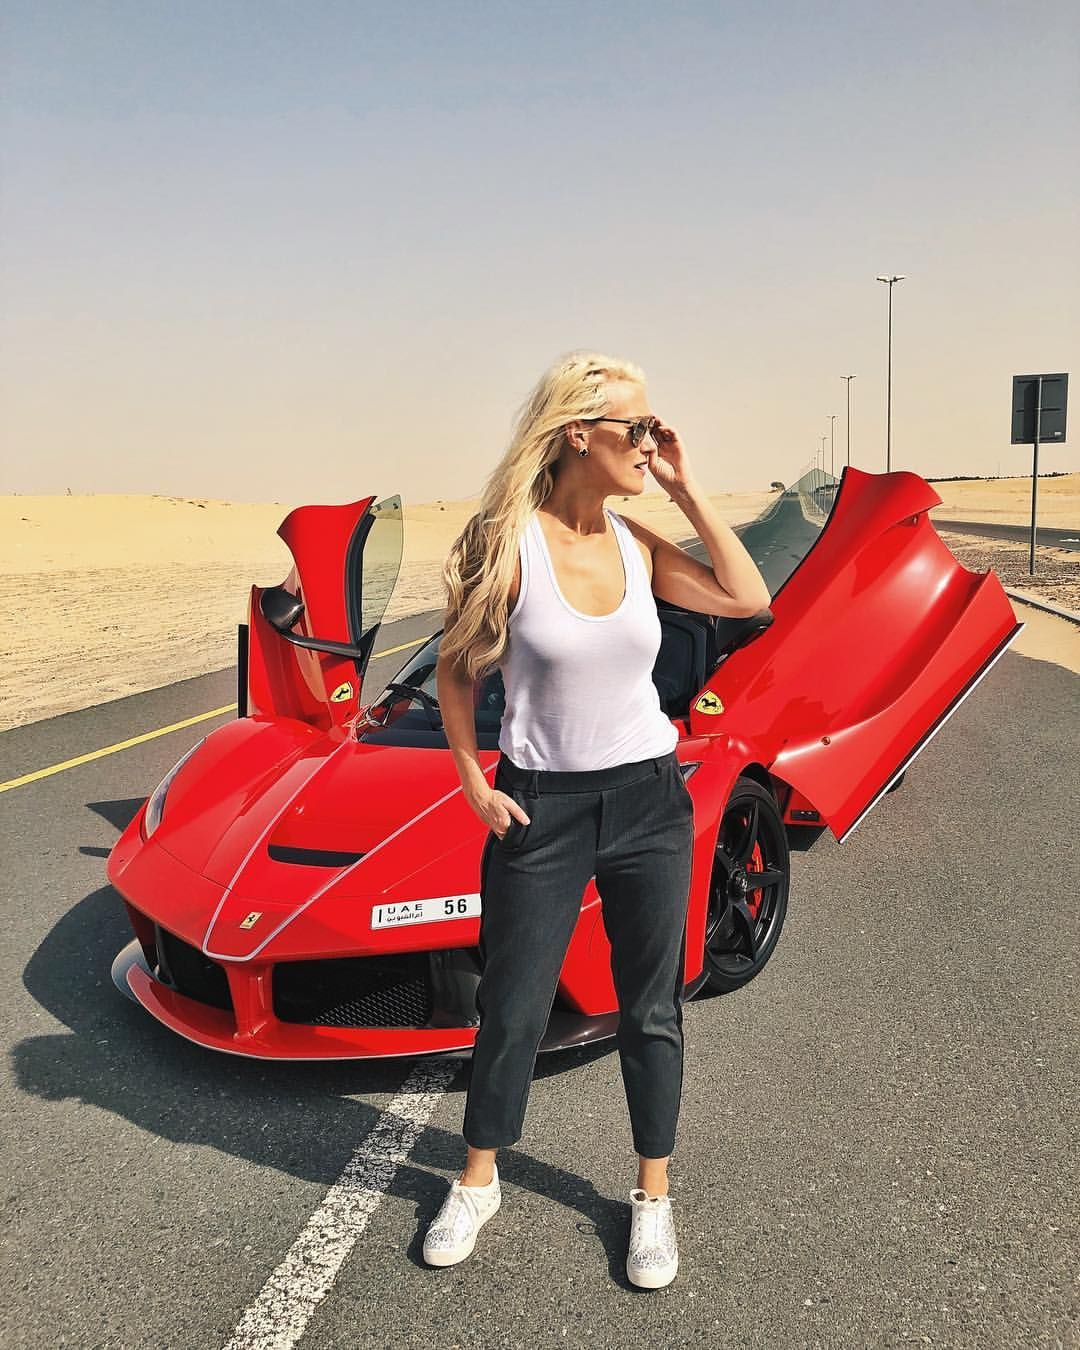 What Car Am I Looking At On The Other Side Of The Road Laferrariaperta Laferrari Ferrari Classy Cars Car Girls Super Cars